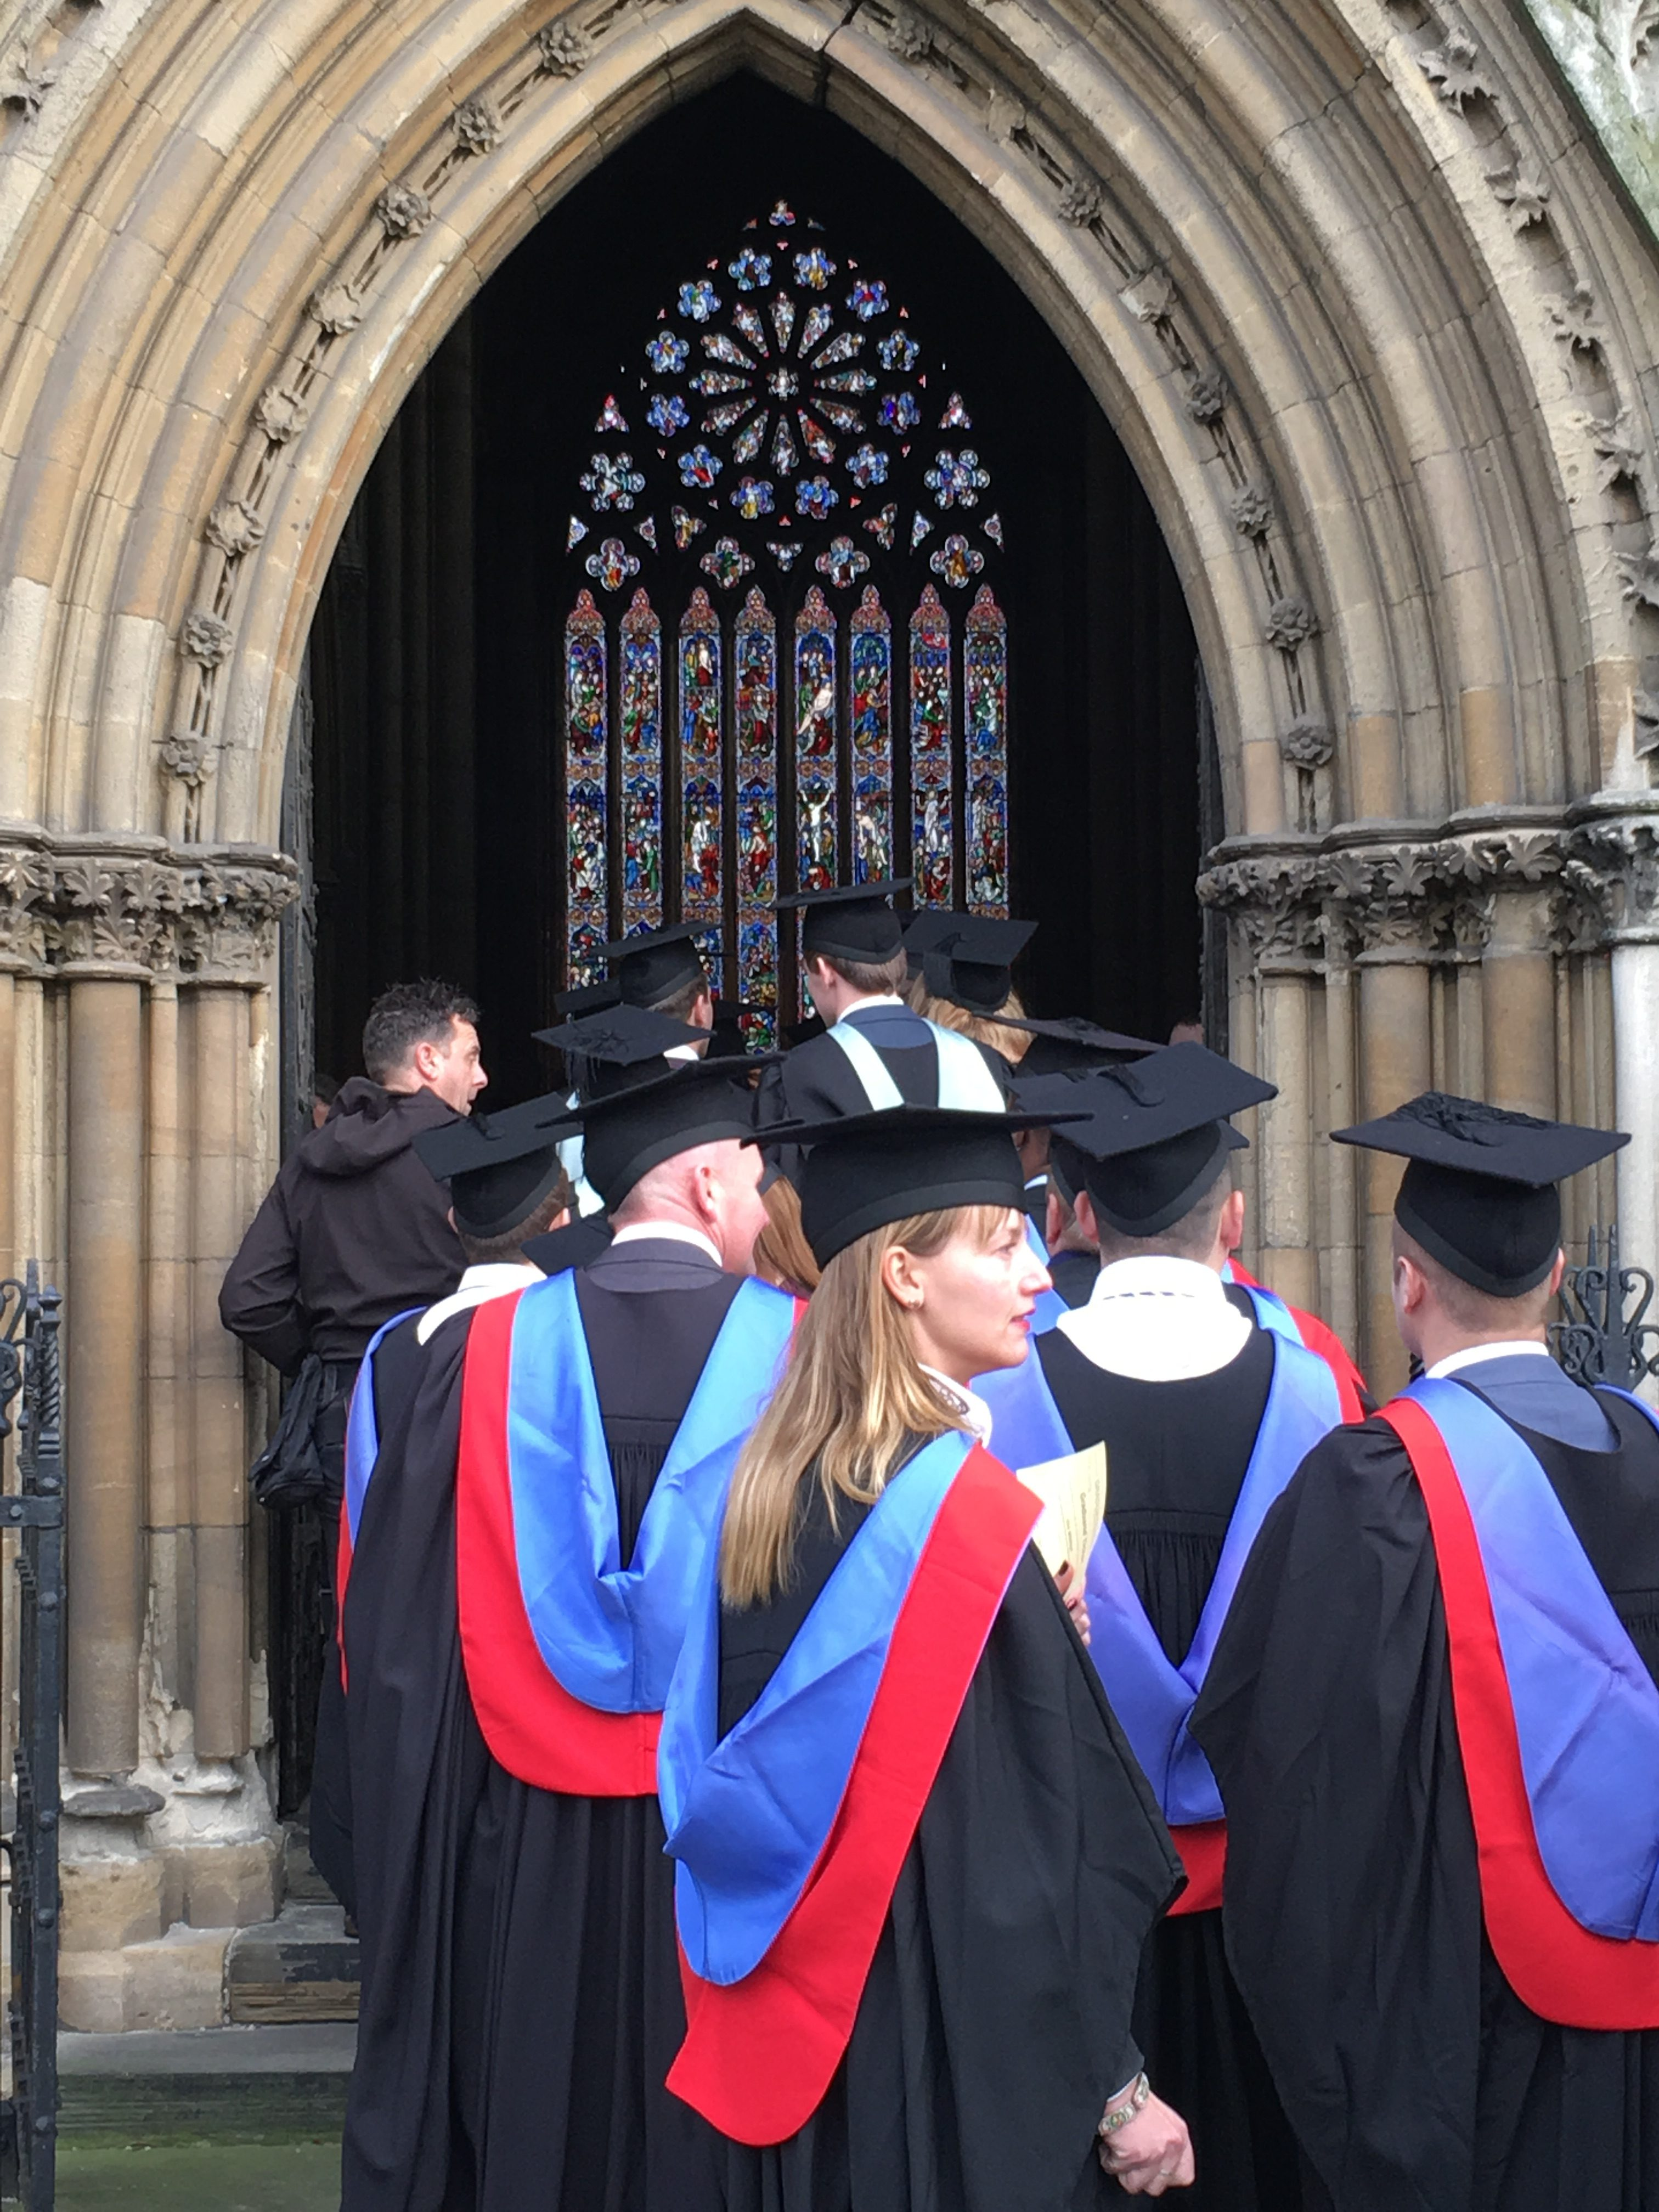 Doncaster College Students arriving at the Minster for Graduation ceremony